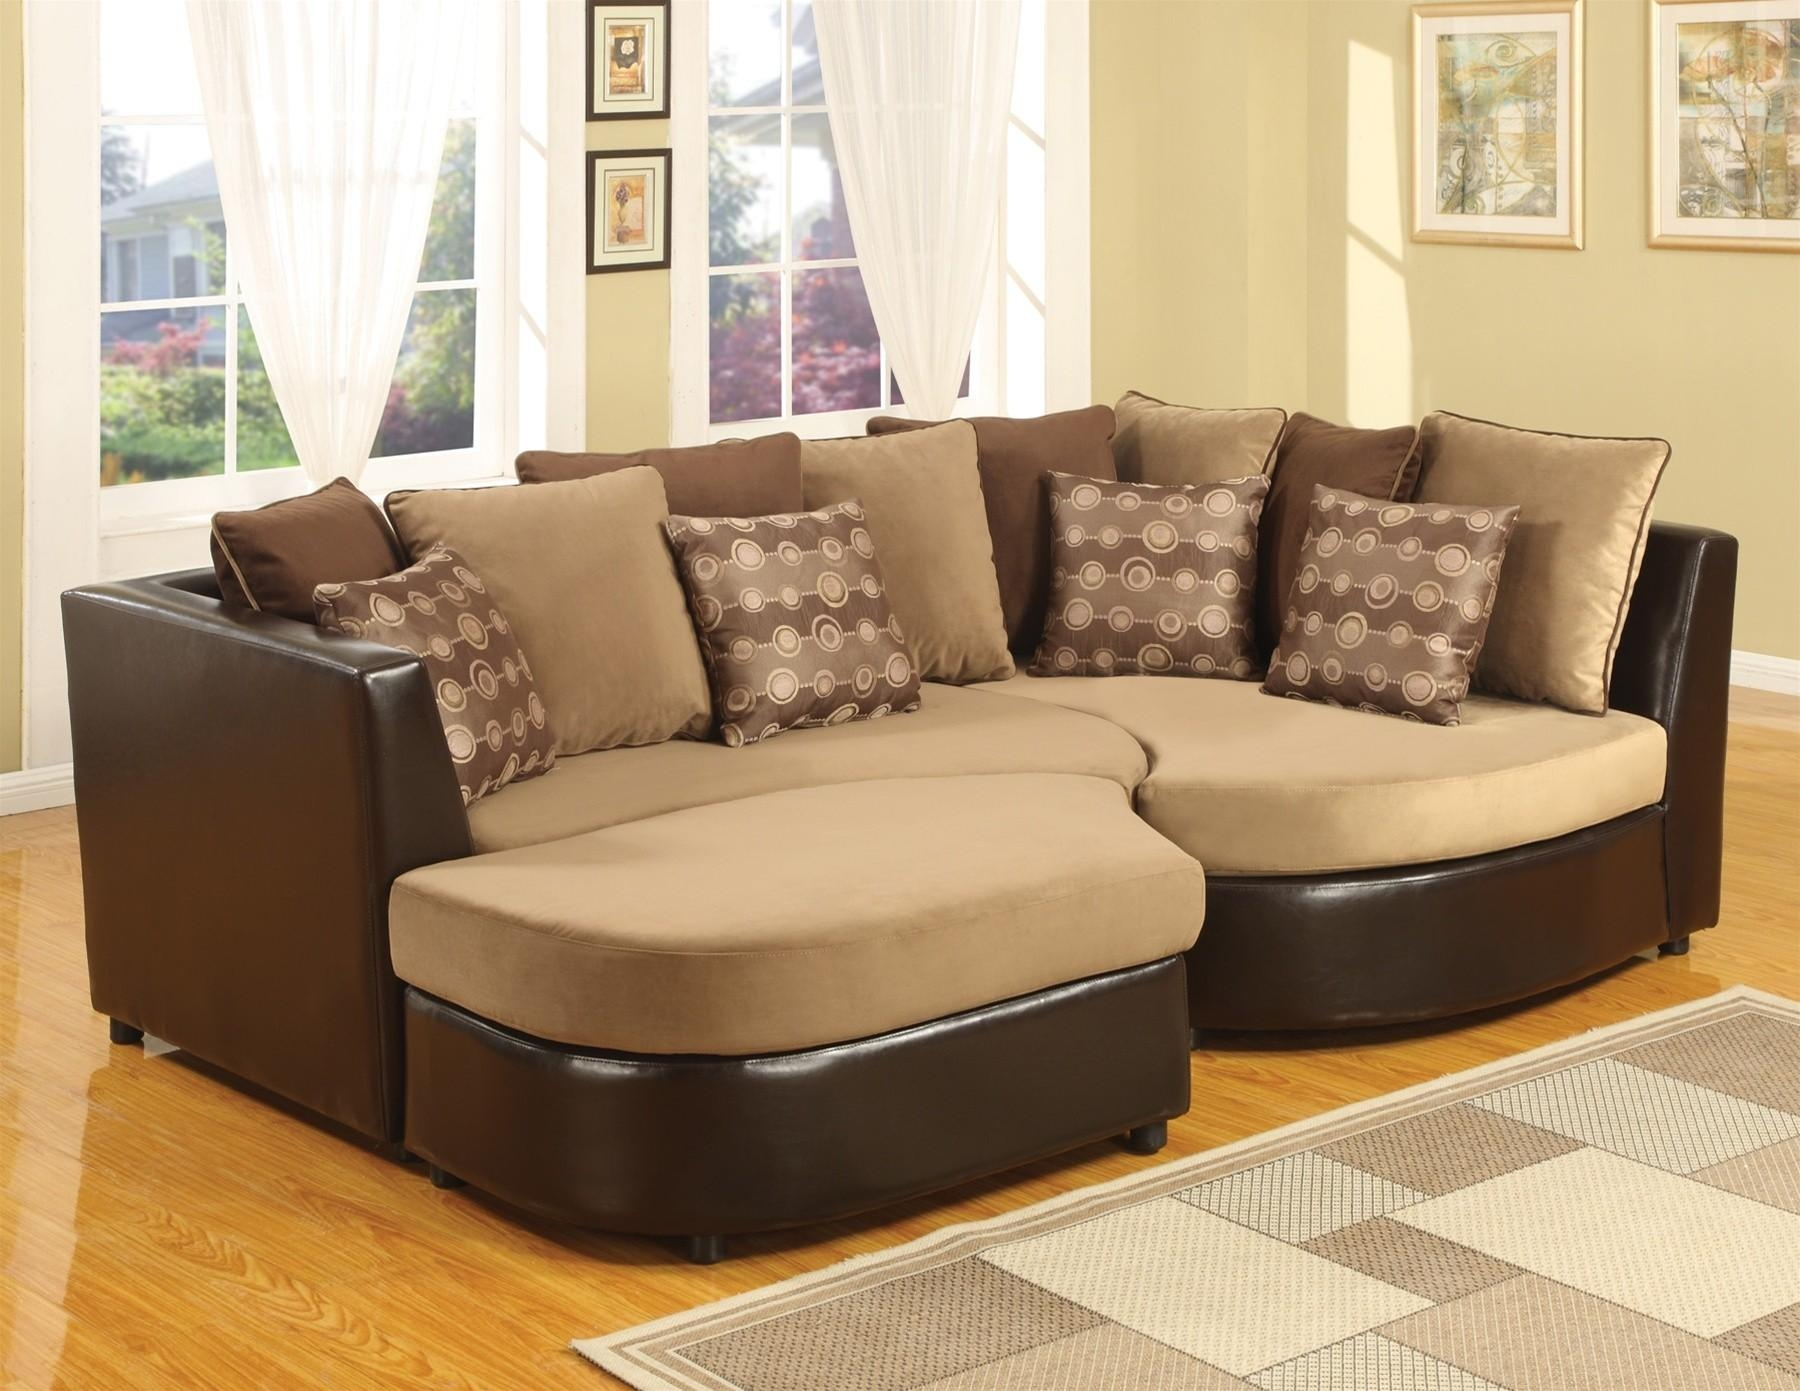 Sectional Pit Group Sofa | Couch & Sofa Ideas Interior Design Pertaining To Pit Sofas (View 4 of 20)